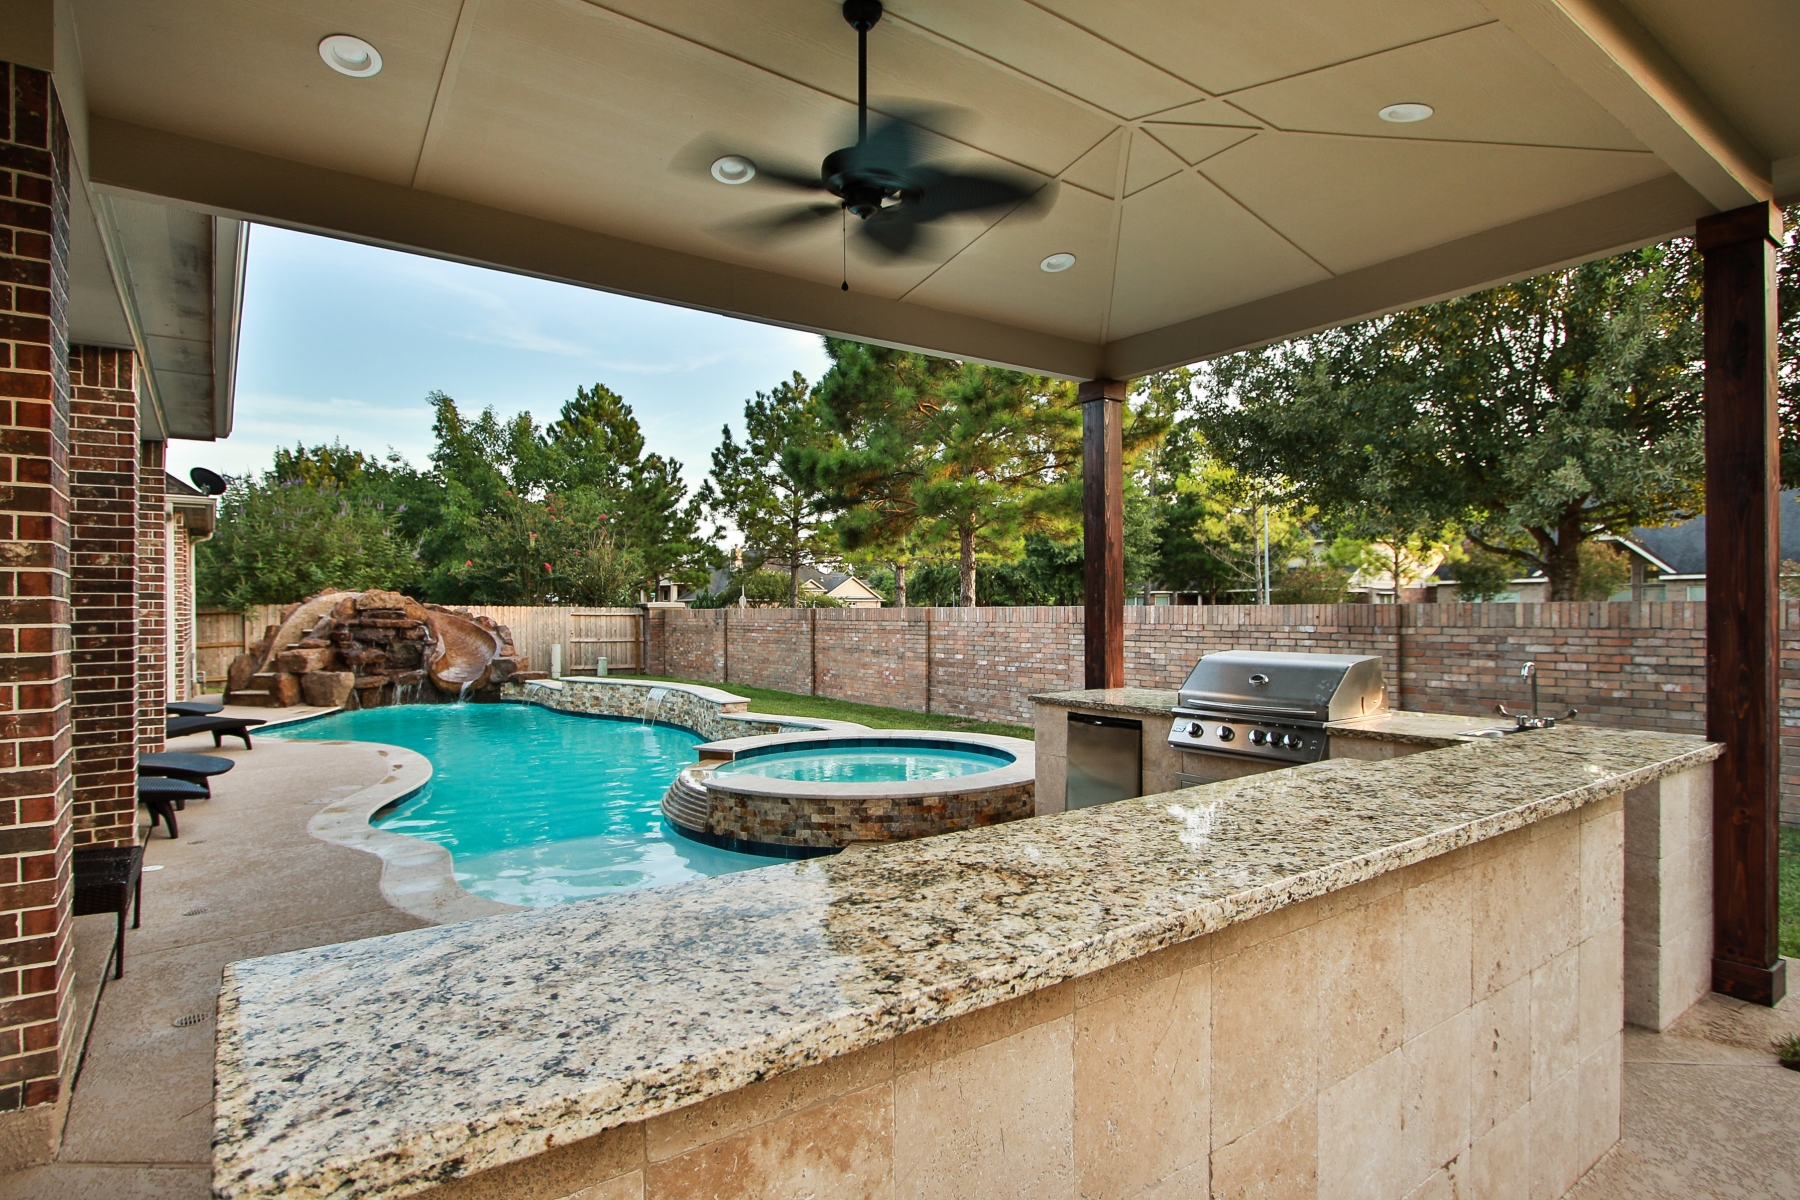 Outdoor Kitchen Overlooking Pool